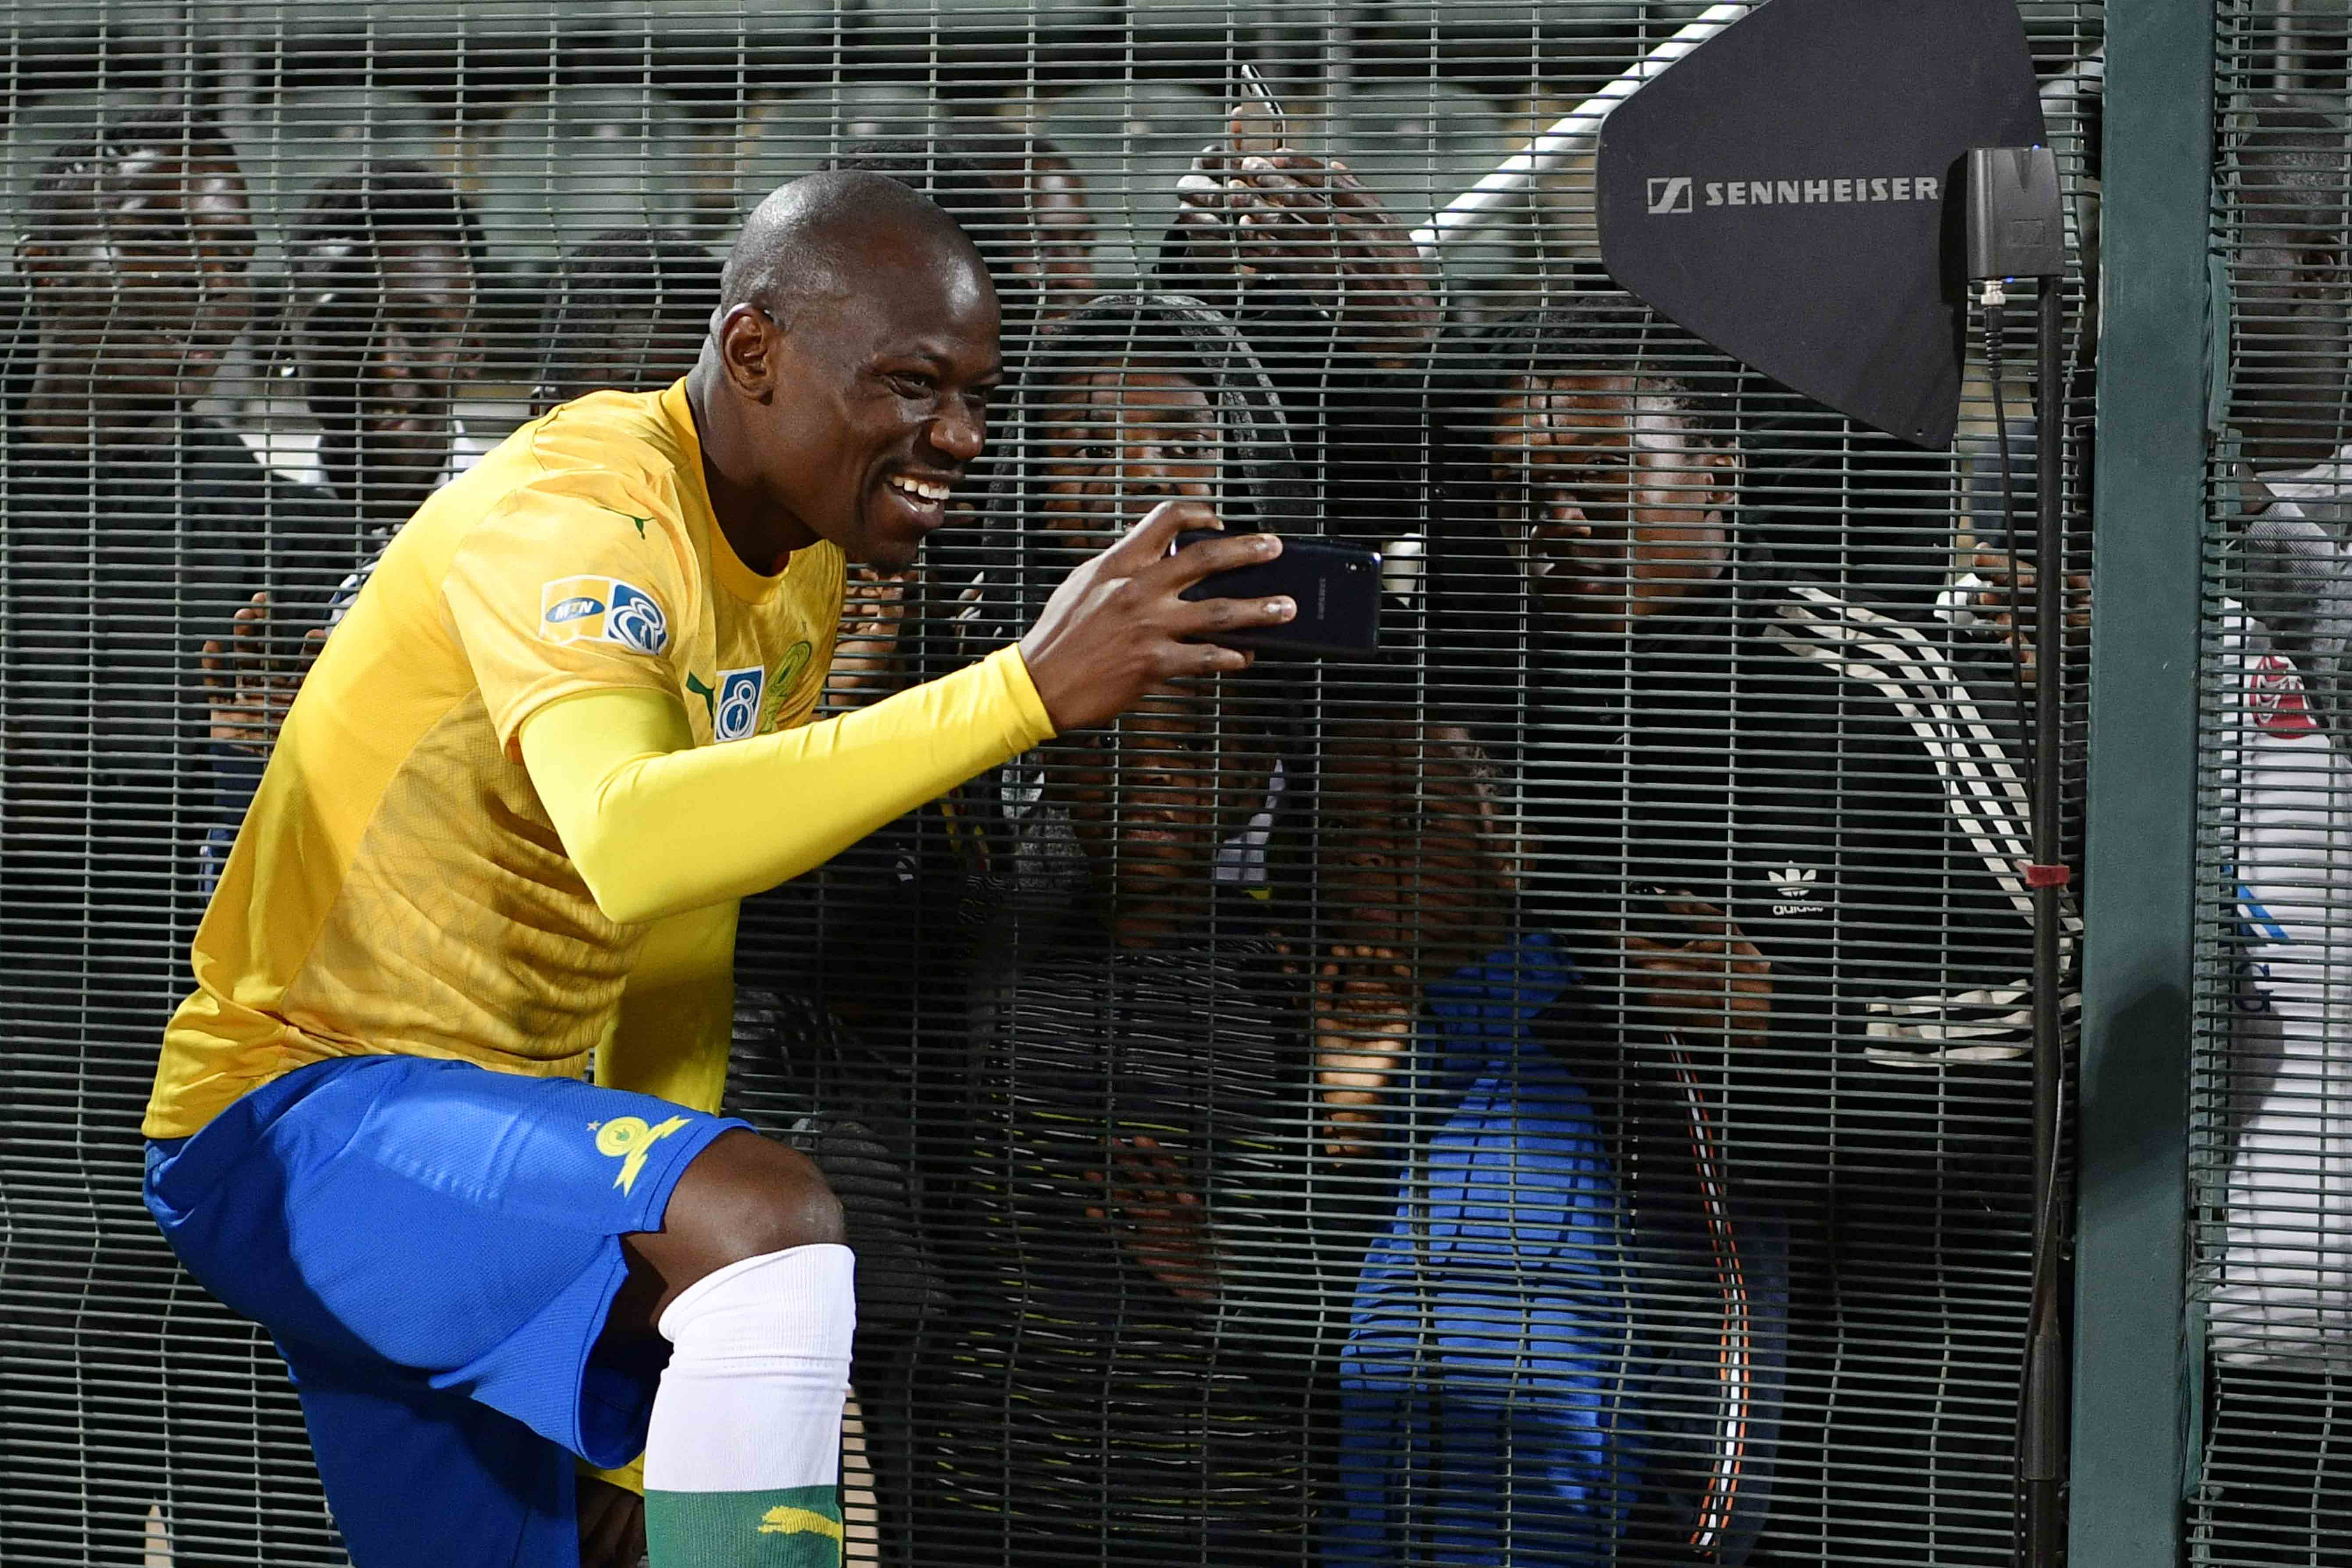 17 August 2019: Fans who usually watch games on SABC Sport missed seeing Mamelodi Sundowns' Hlompho Kekana posing with spectators at the MTN8 quarterfinal match between Sundowns and Bloemfontein Celtic. (Photograph by Lefty Shivambu/Gallo Images)